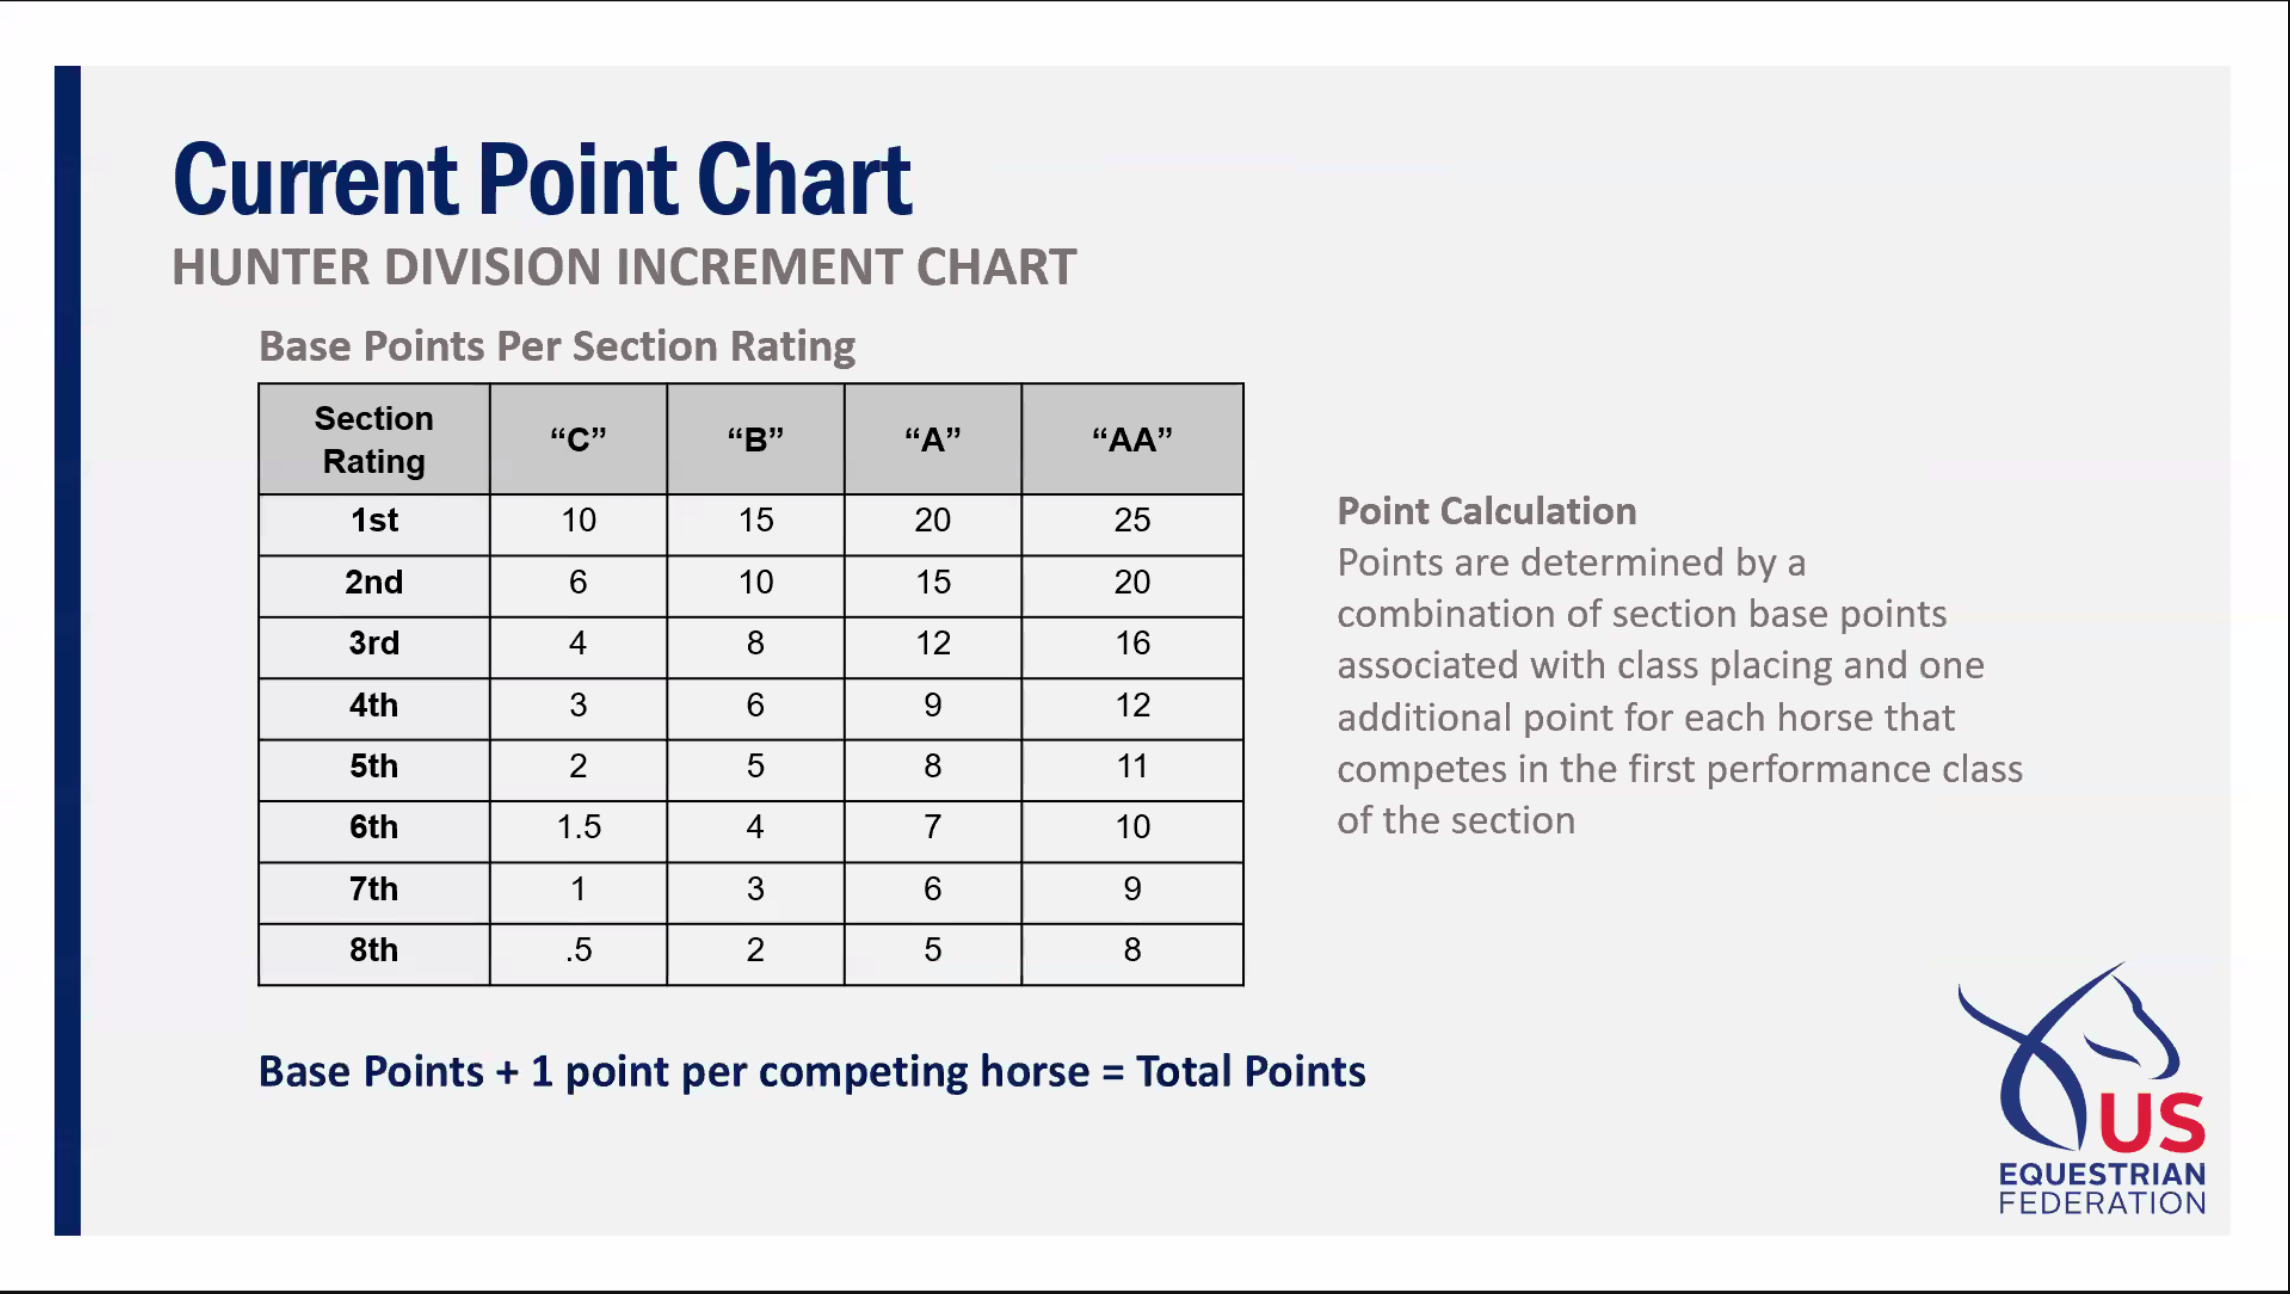 *Current Point Chart